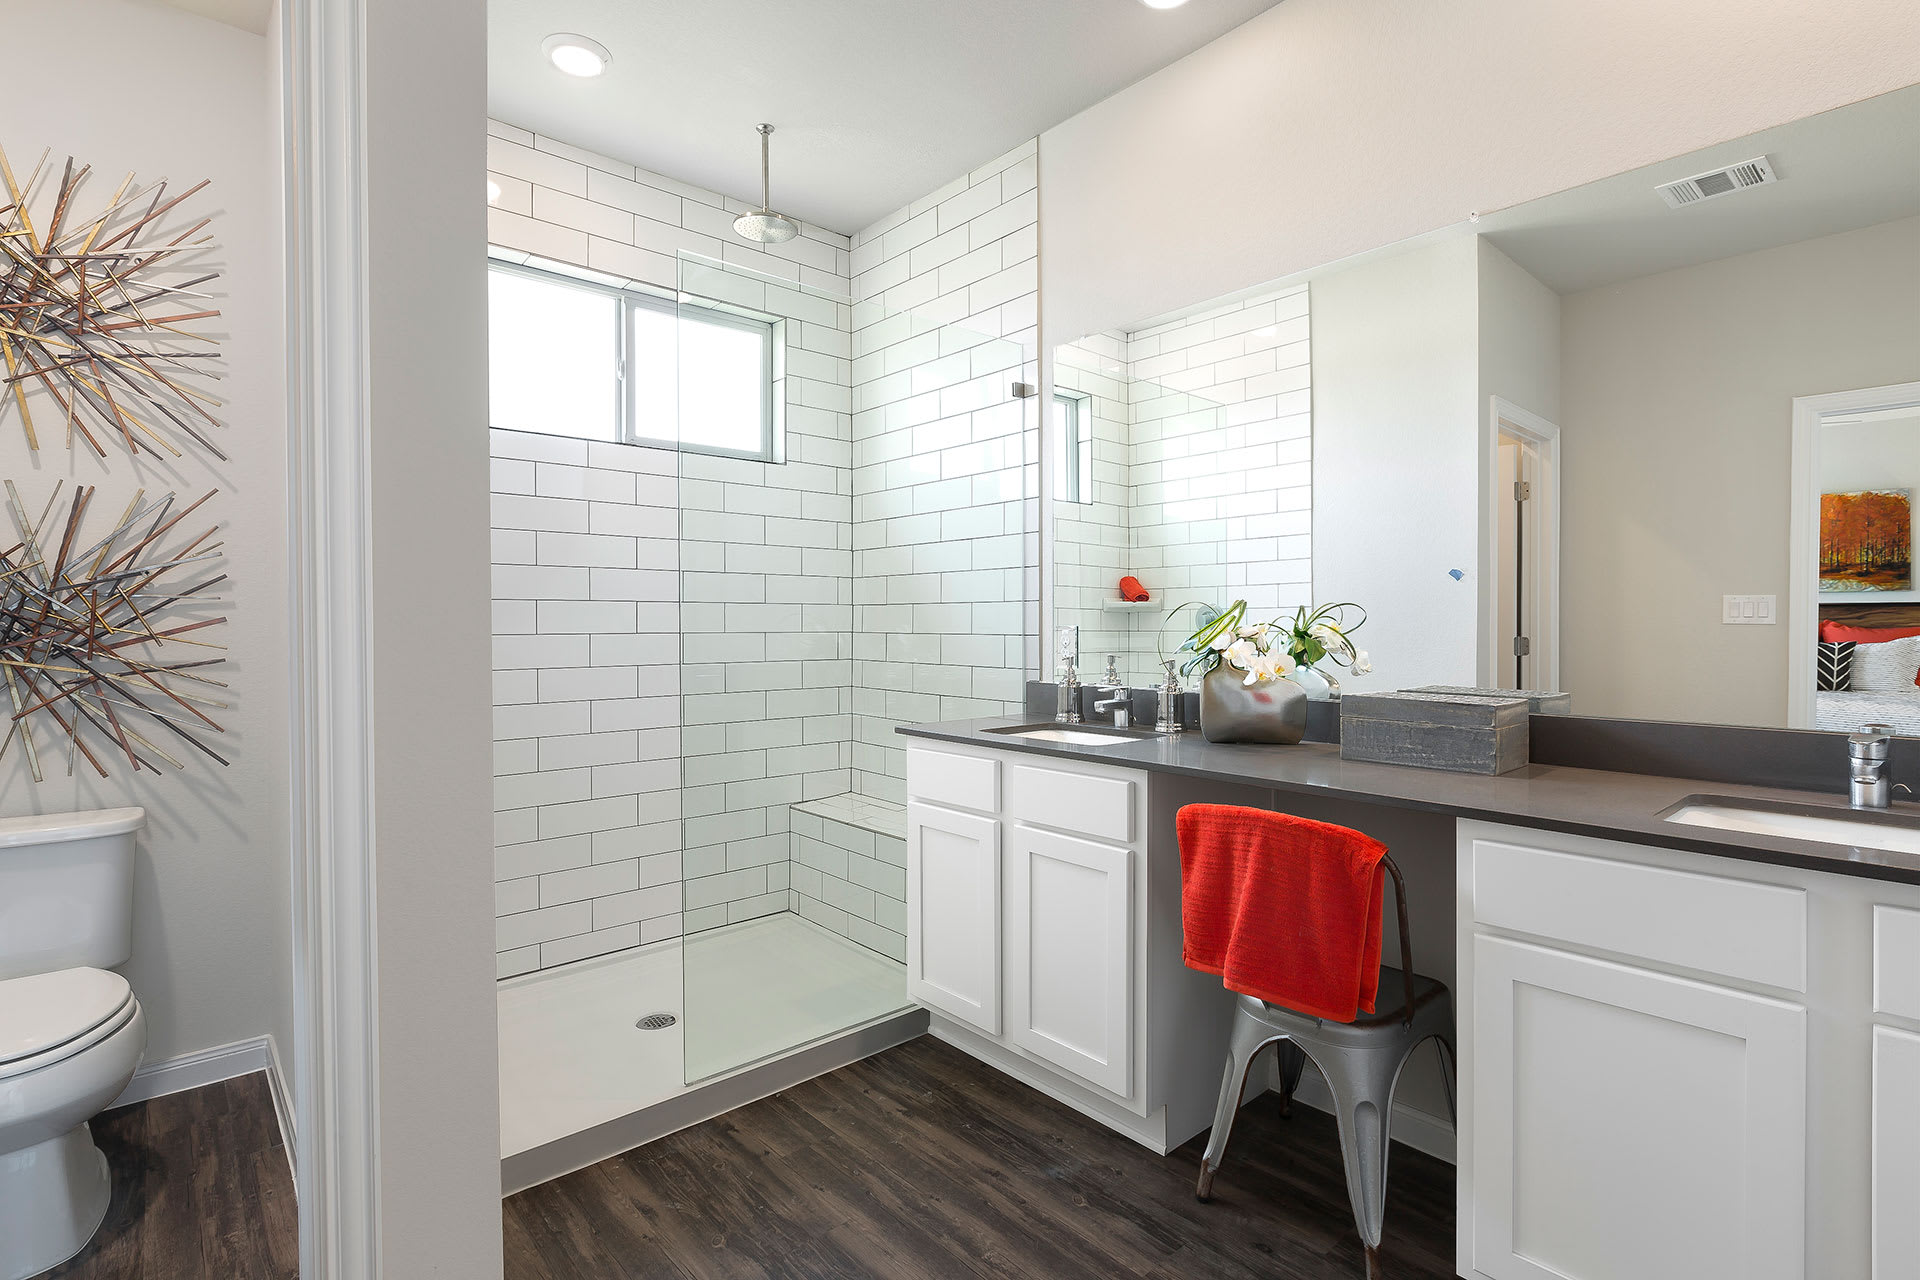 Rivers Edge Apartments Stand-up Showers